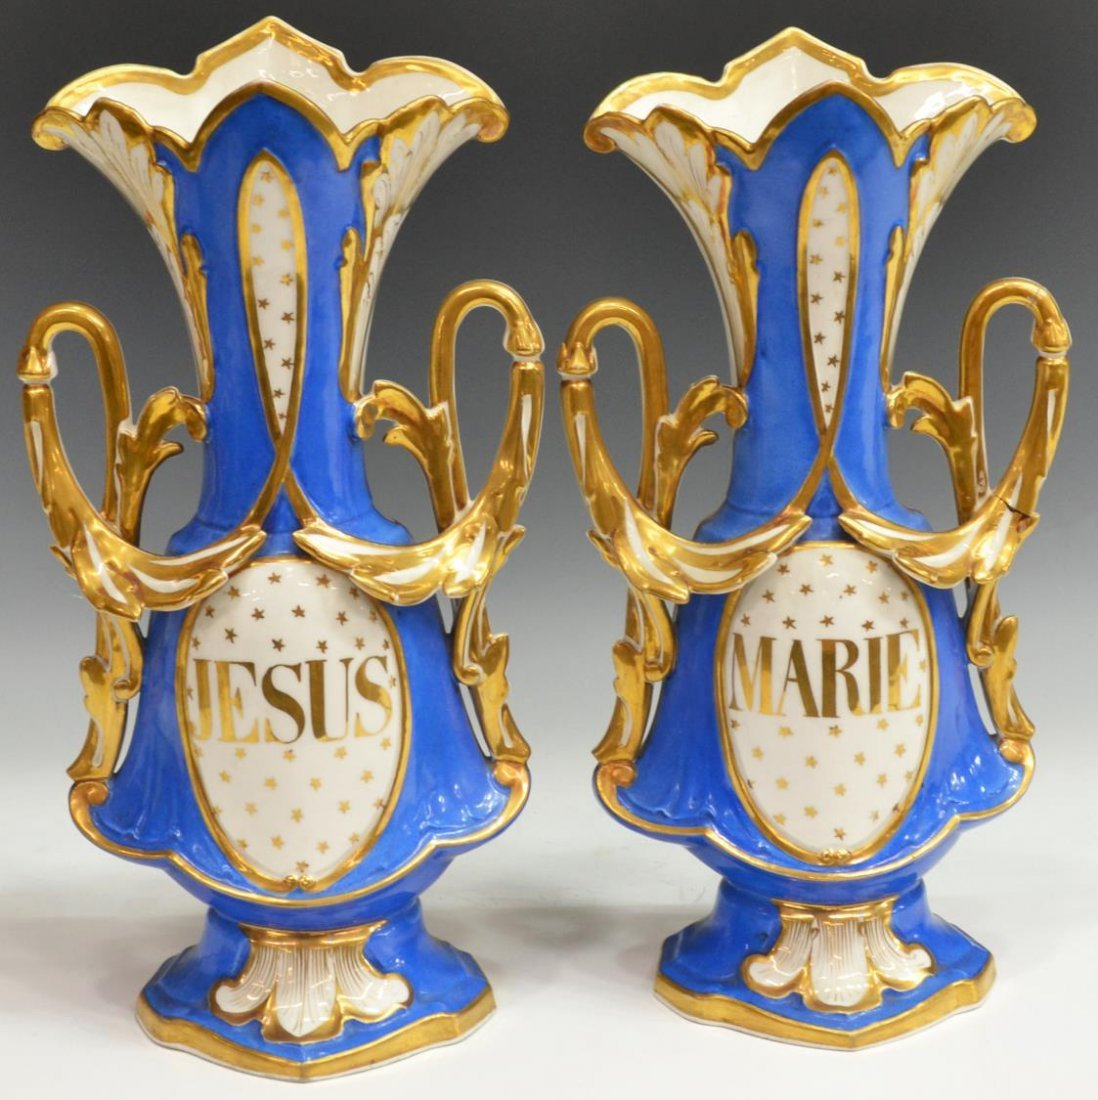 (2) OLD PARIS PORCELAIN 'JESUS' & 'MARIE' VASES